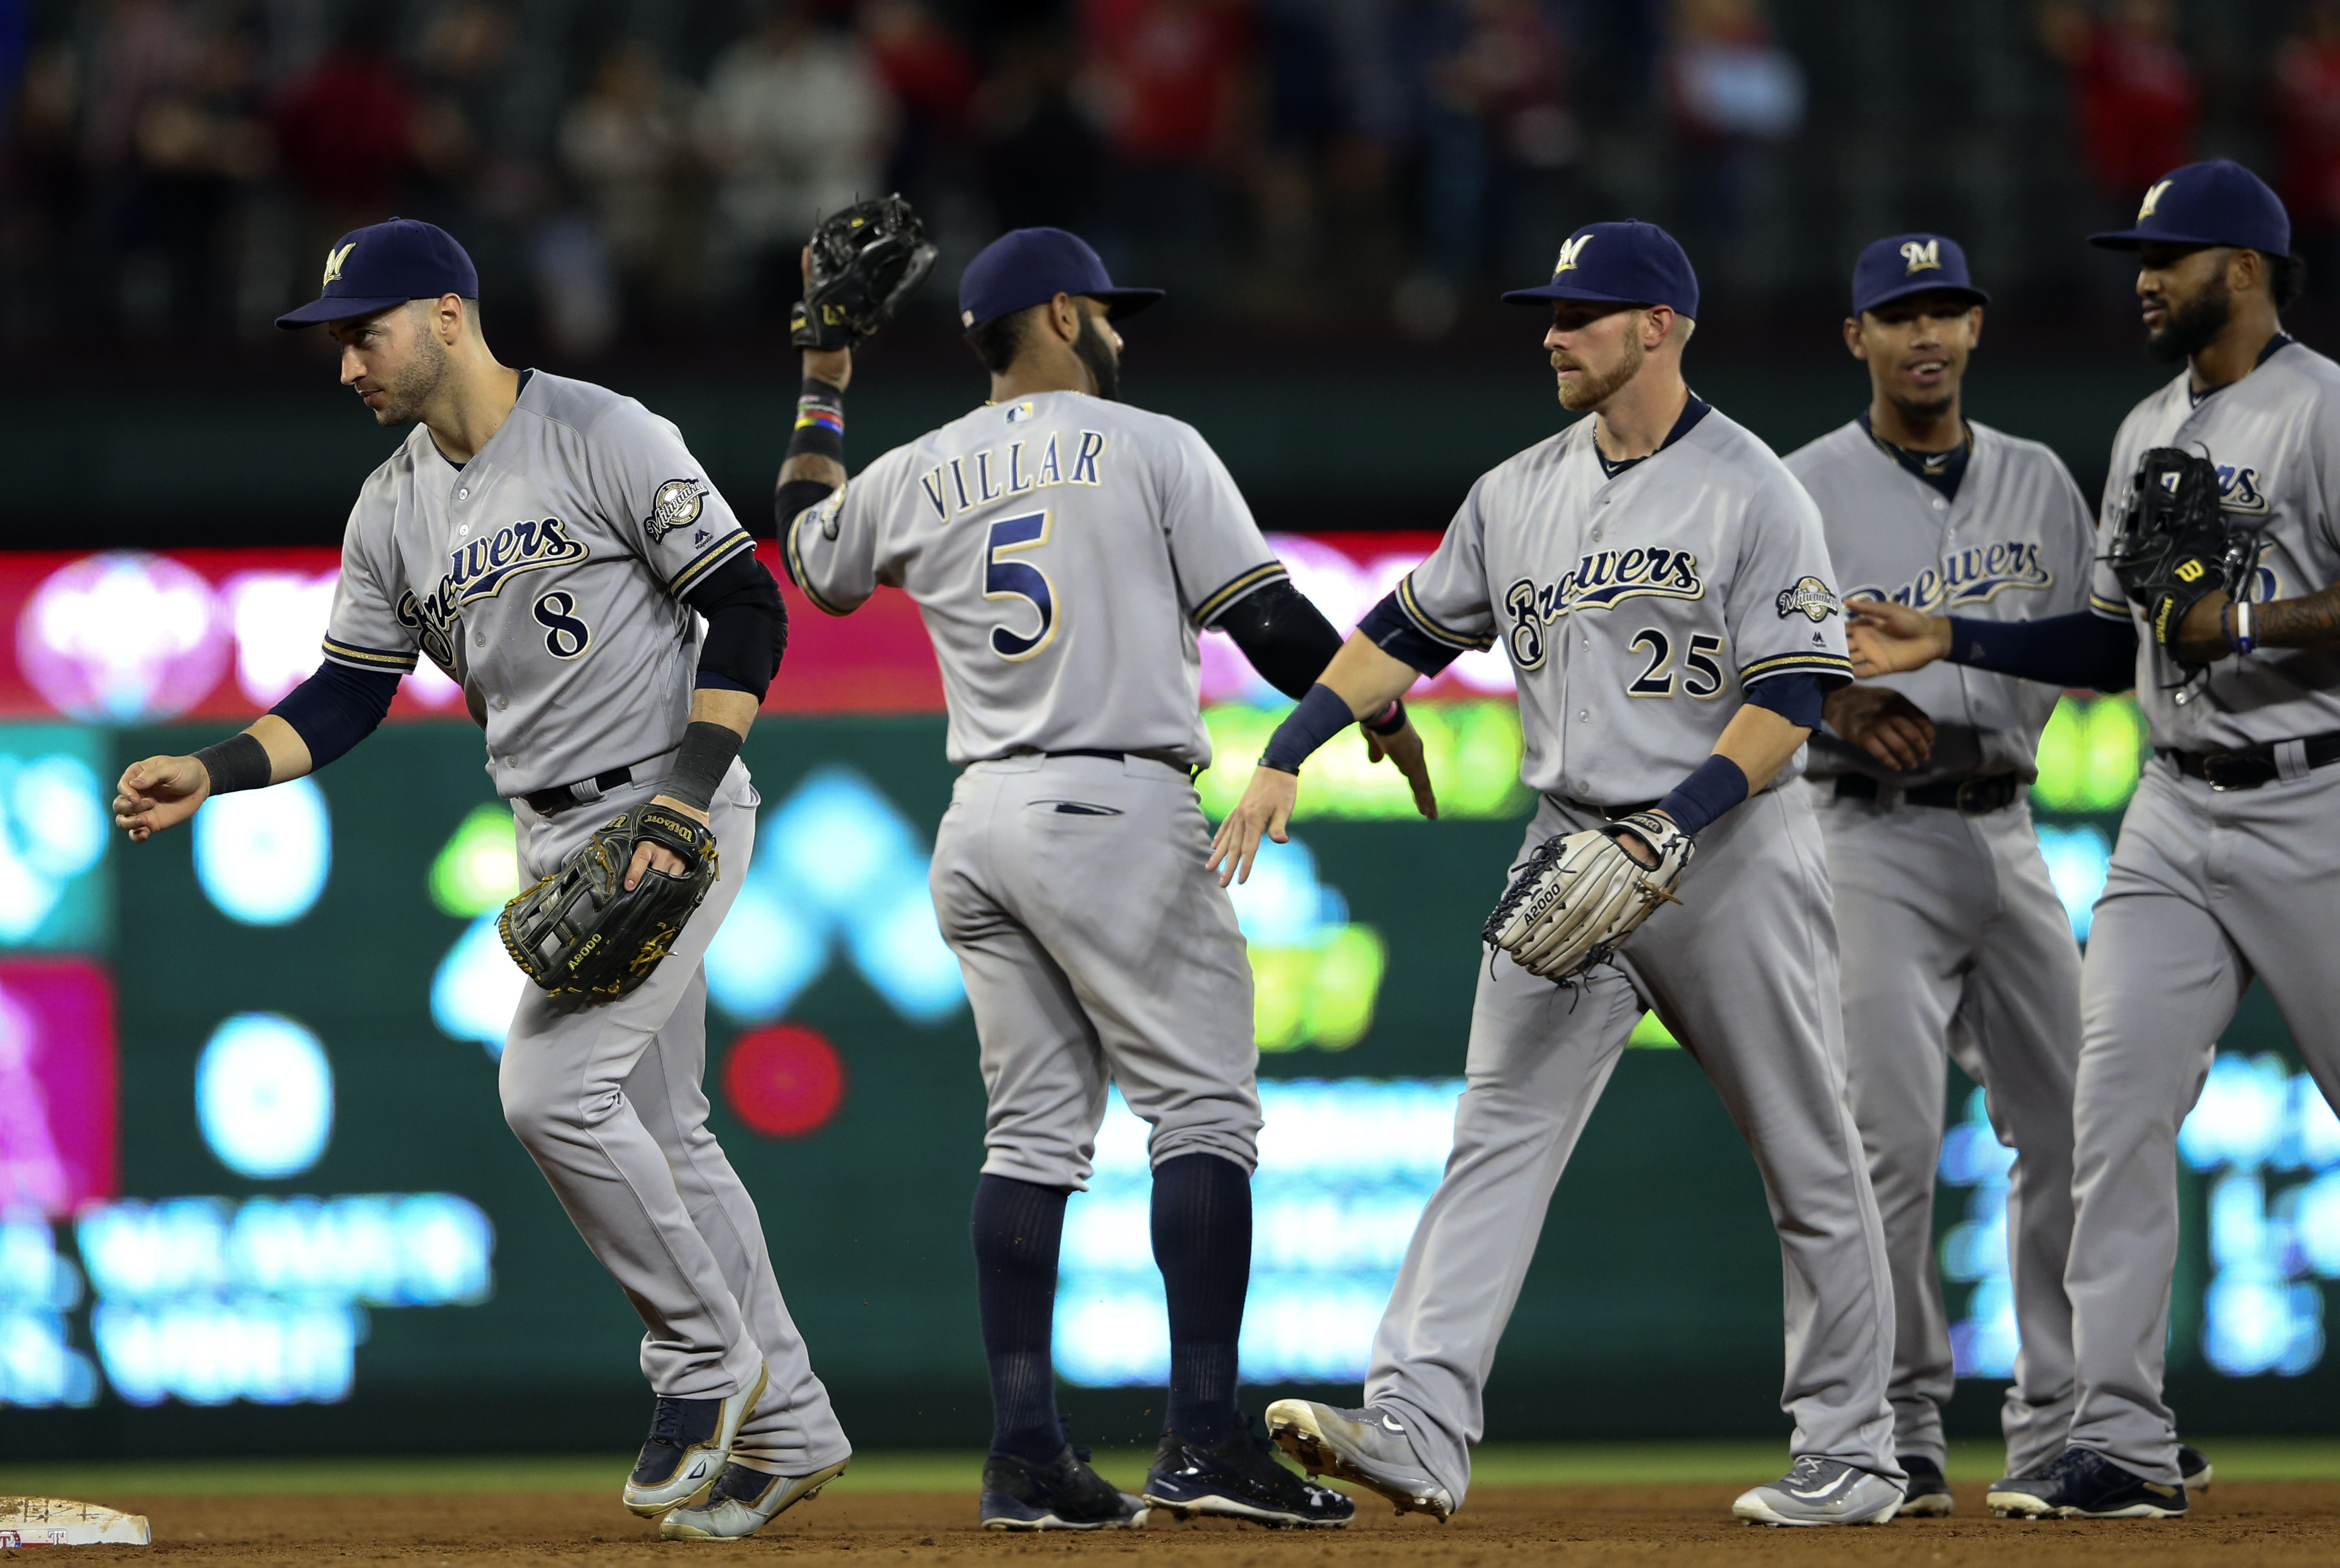 Image result for Milwaukee brewers playing away games